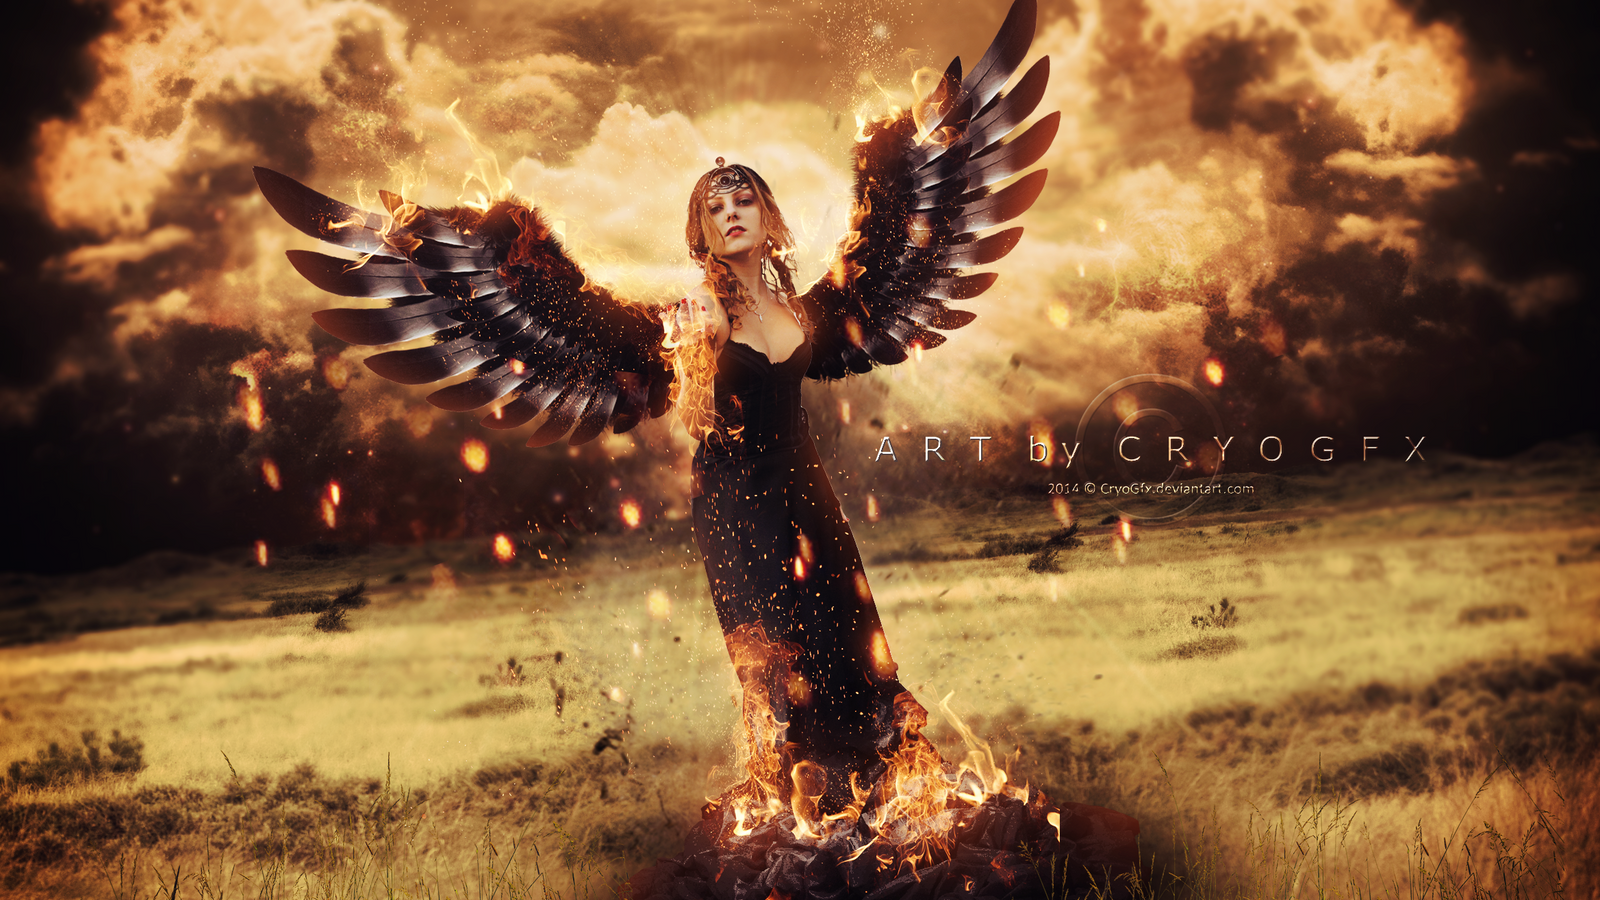 Queen of Fire by CryoGfx